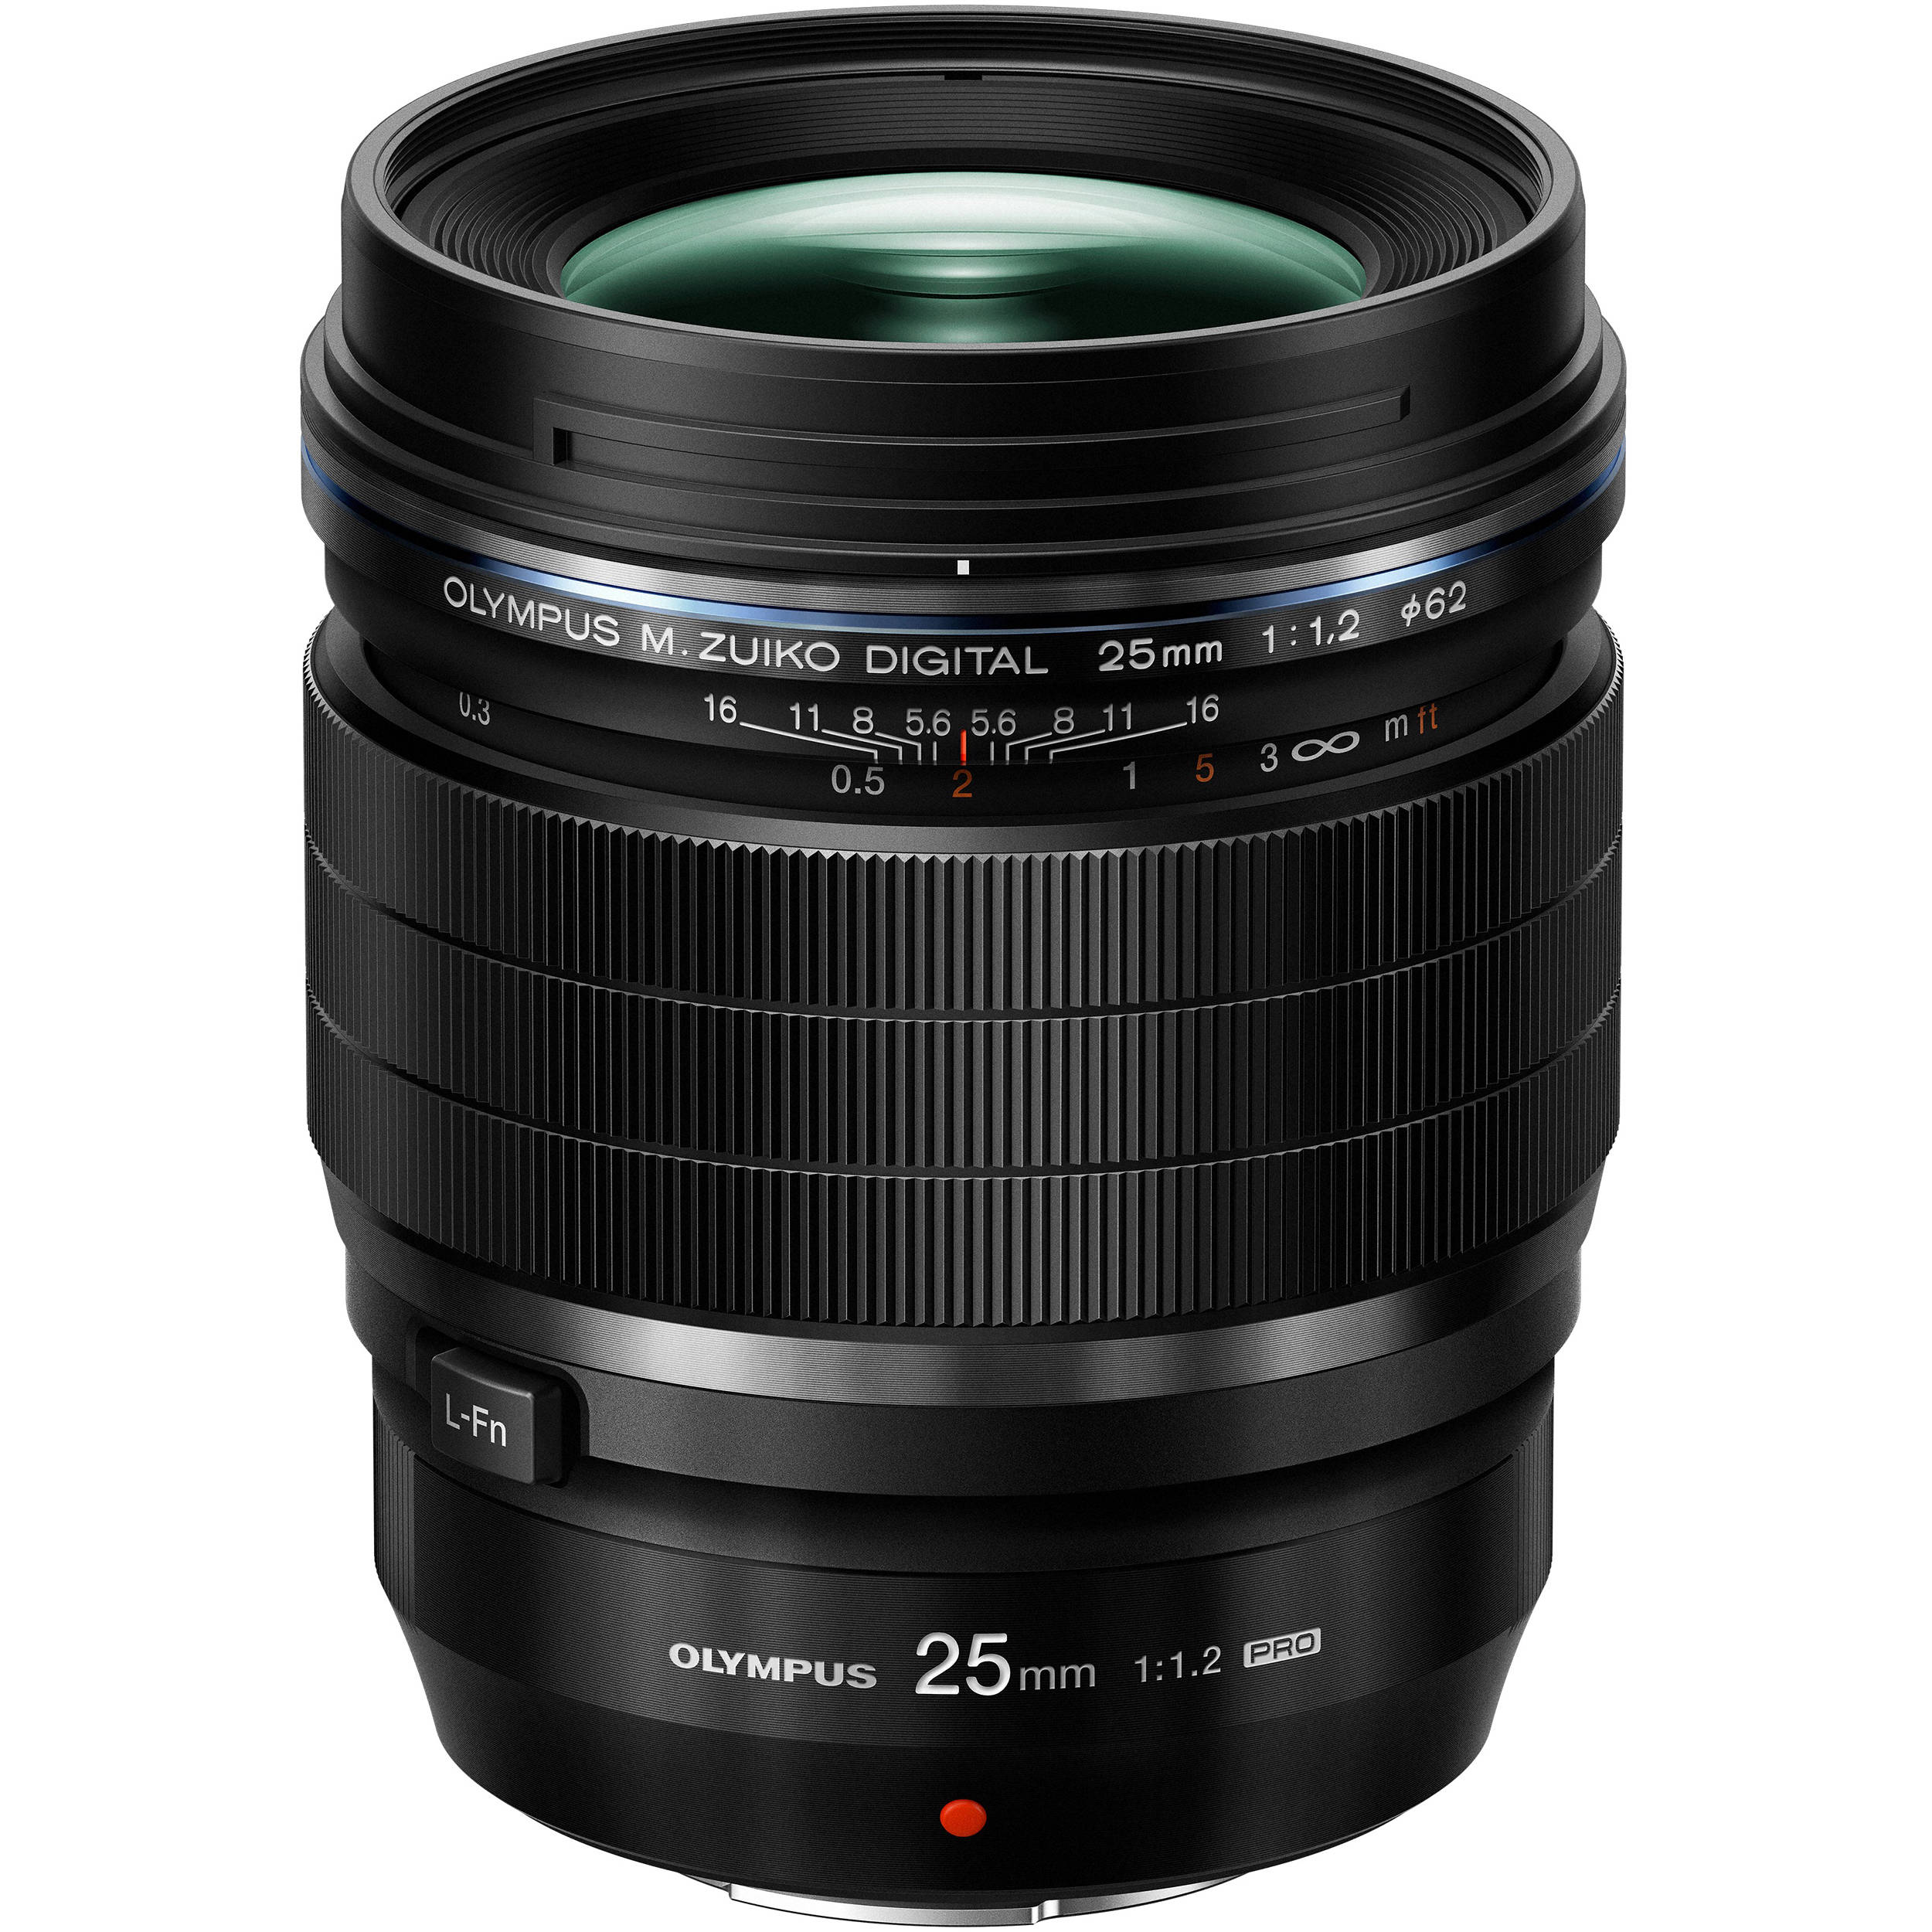 *Olympus M.Zuiko Digital ED 25mm f/1.2 PRO Lens- This is a pretty nice lens.